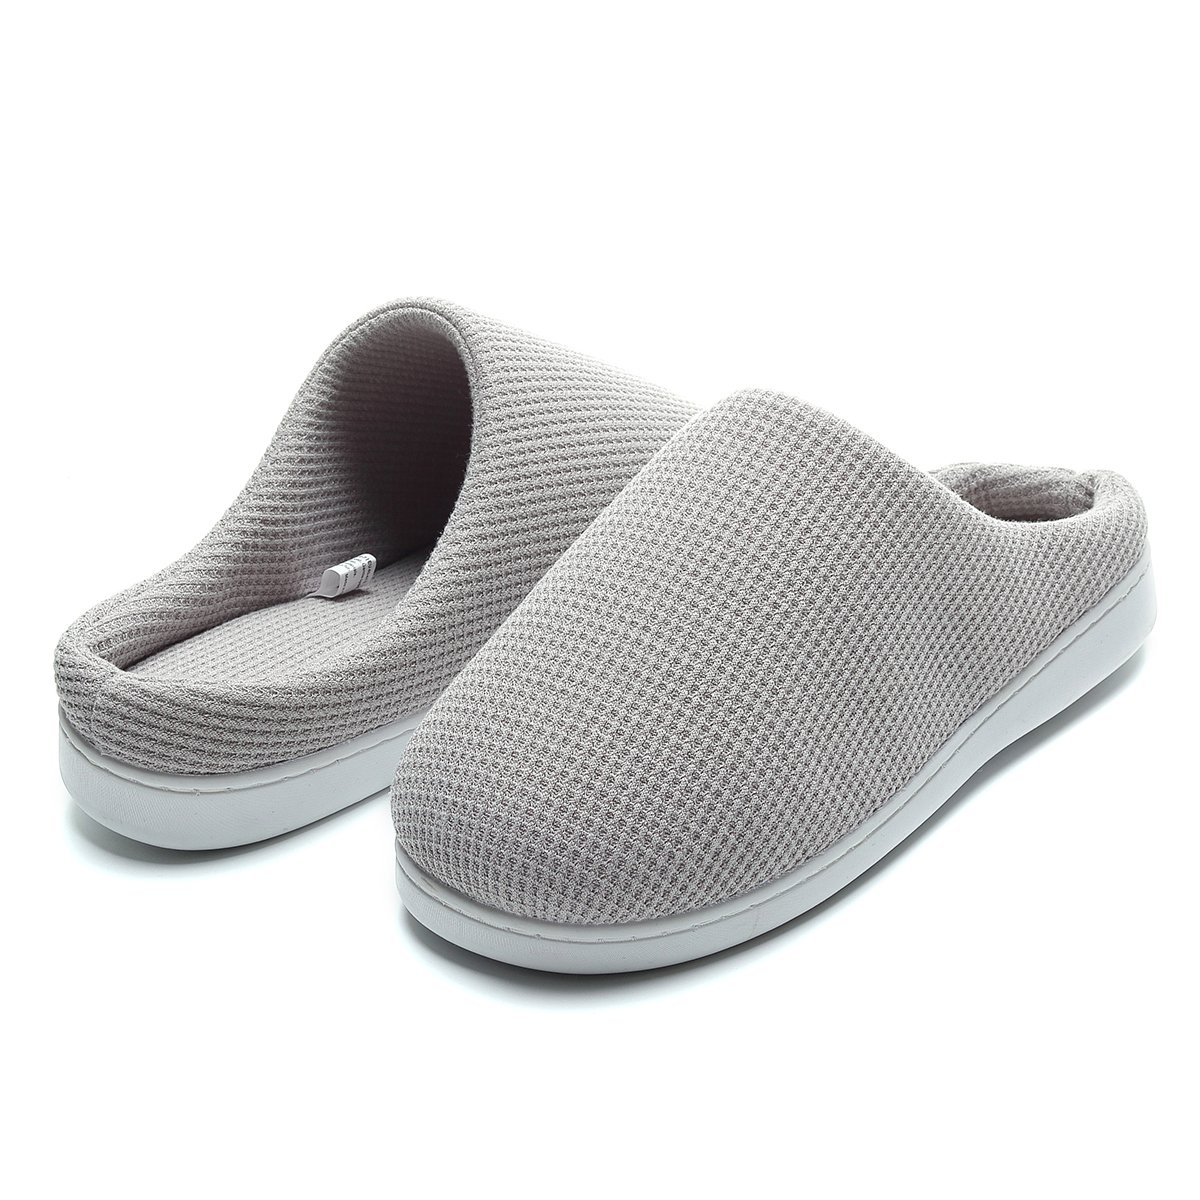 Slippers for Men Memory Foam Cozy Plush Breathable Indoors Lightweight Non-Skid Machine Washable